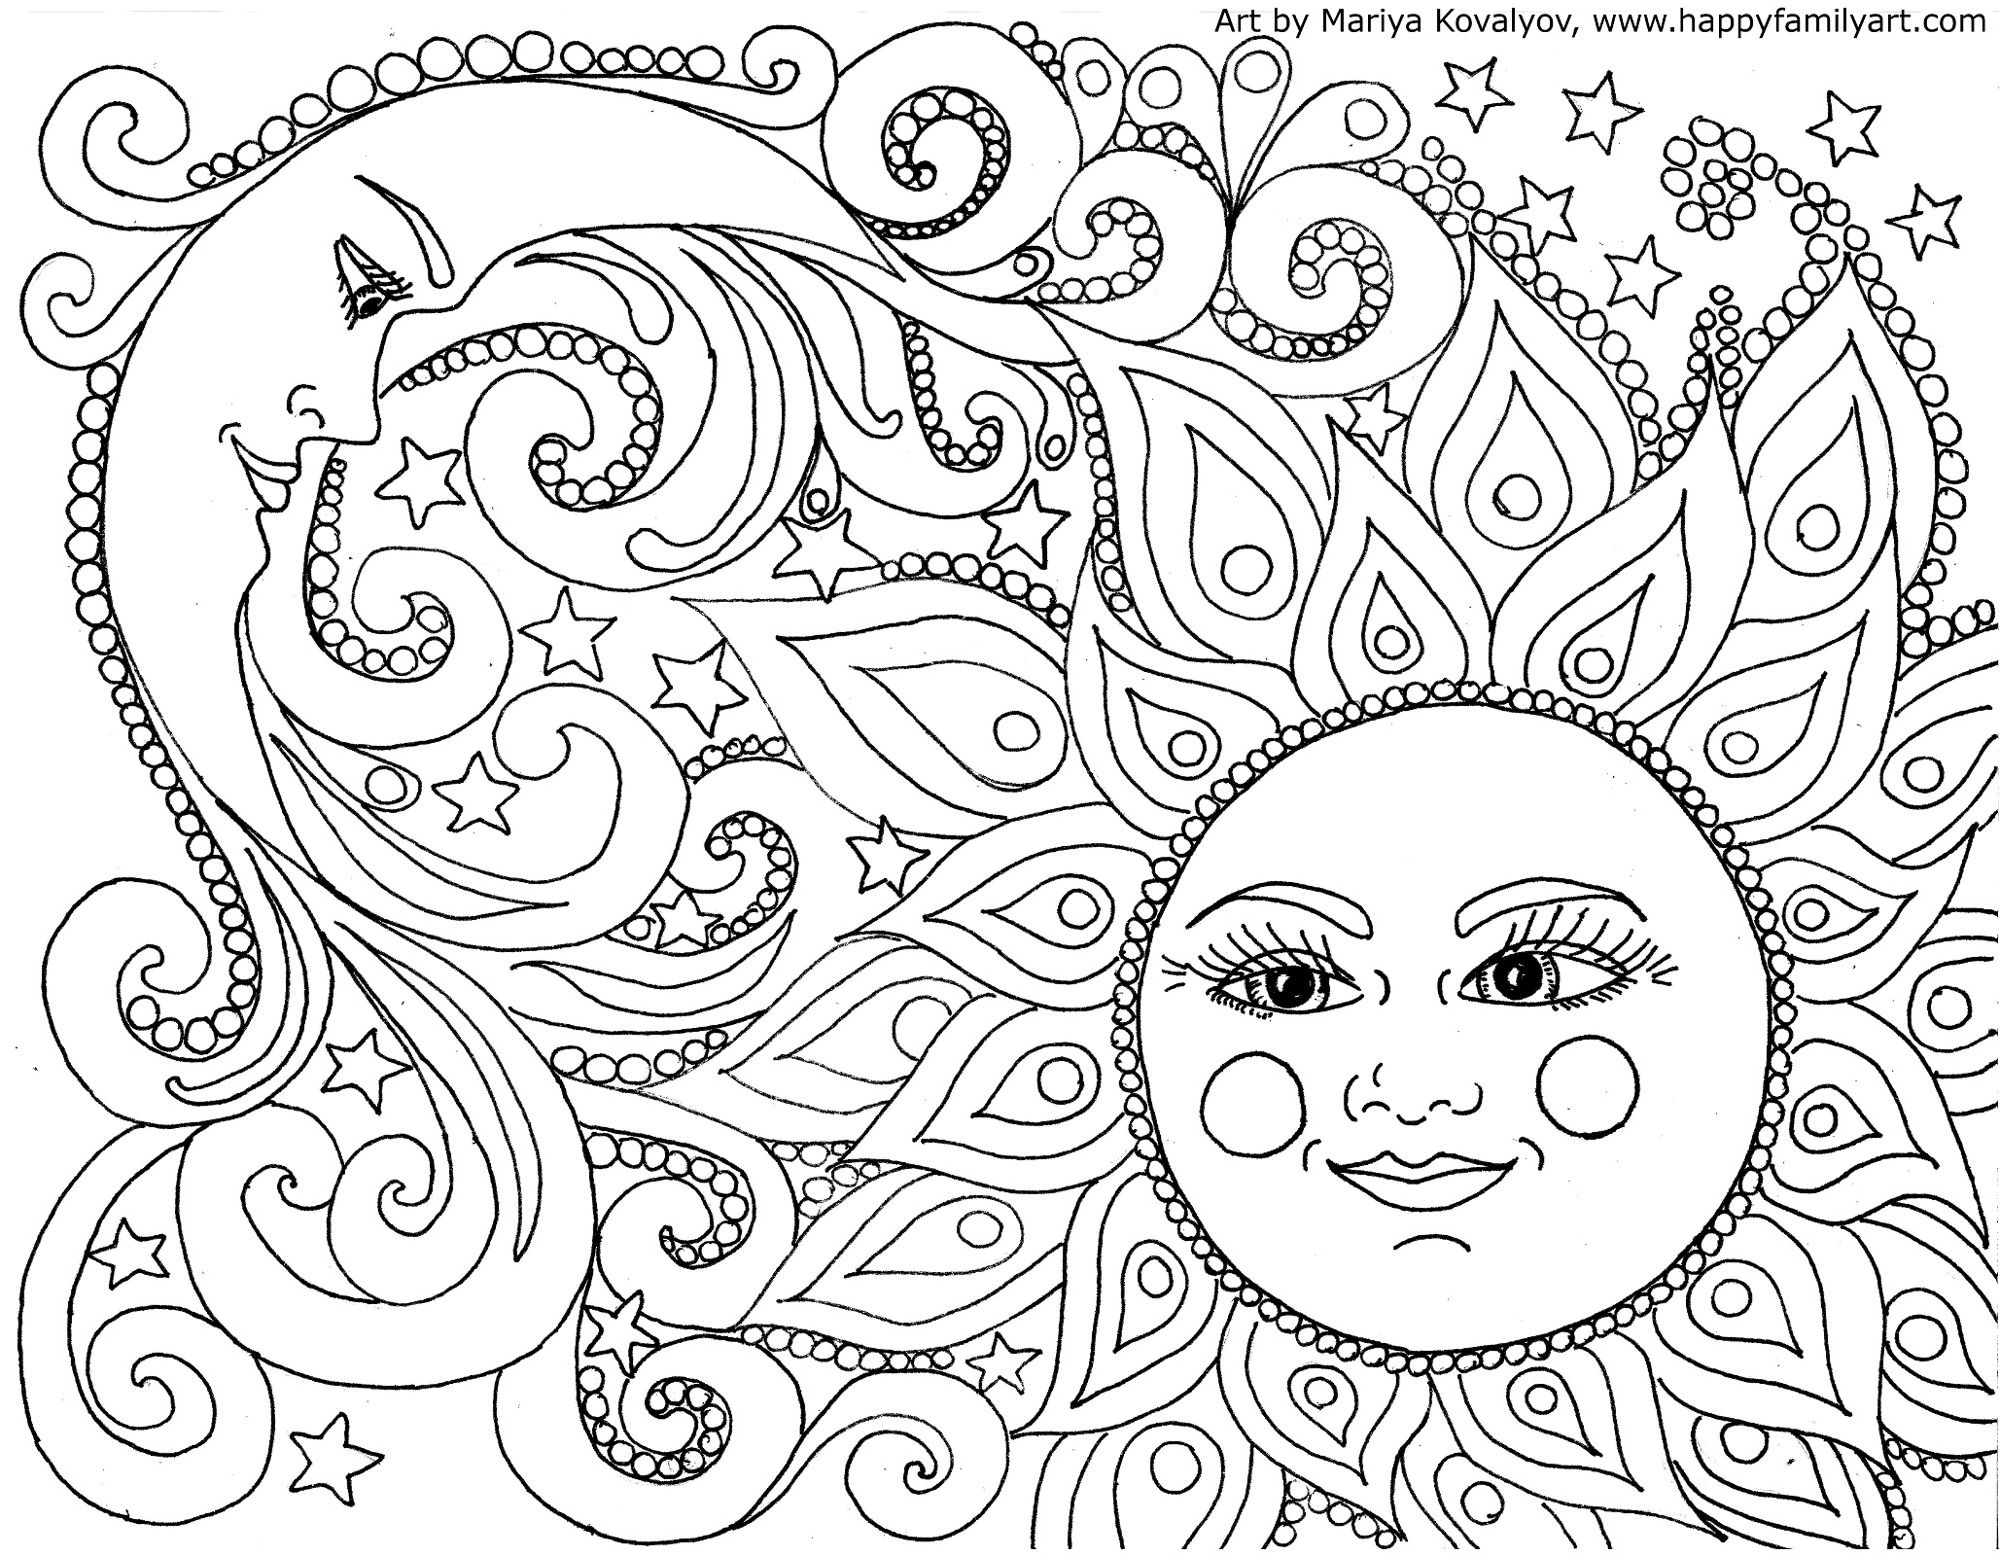 Free coloring pages adults printable - I Made Many Great Fun And Original Coloring Pages Color Your Heart Out Printable Adult Coloring Pagescoloring Booksfree